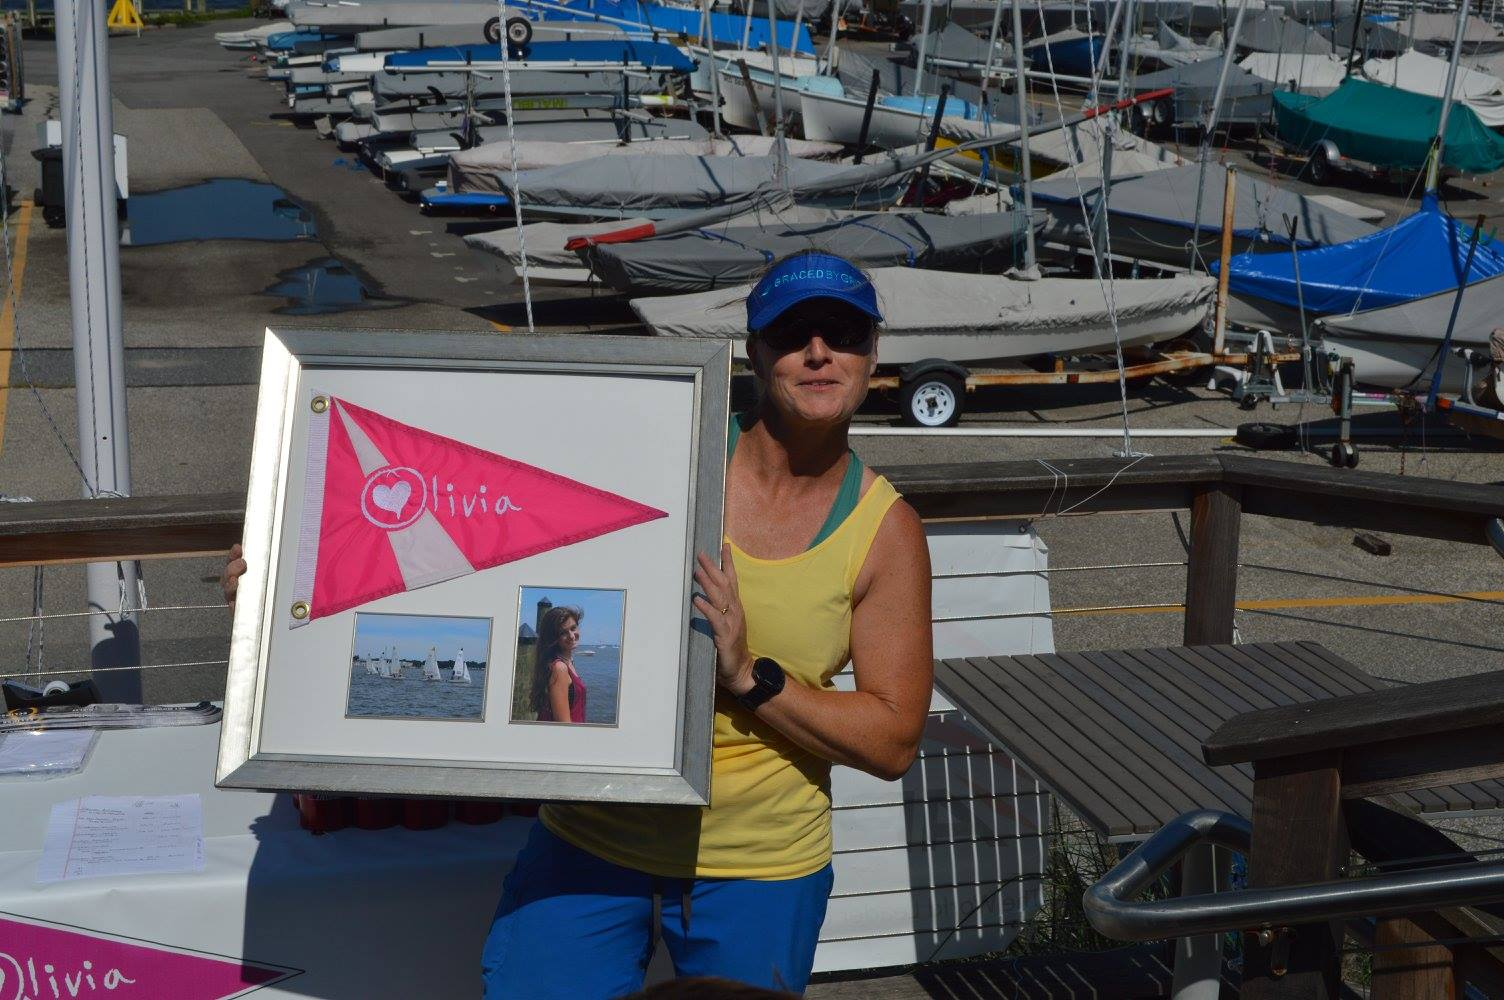 CRAB CCCup And Olivias Team Race SpinSheet Racing Roundup